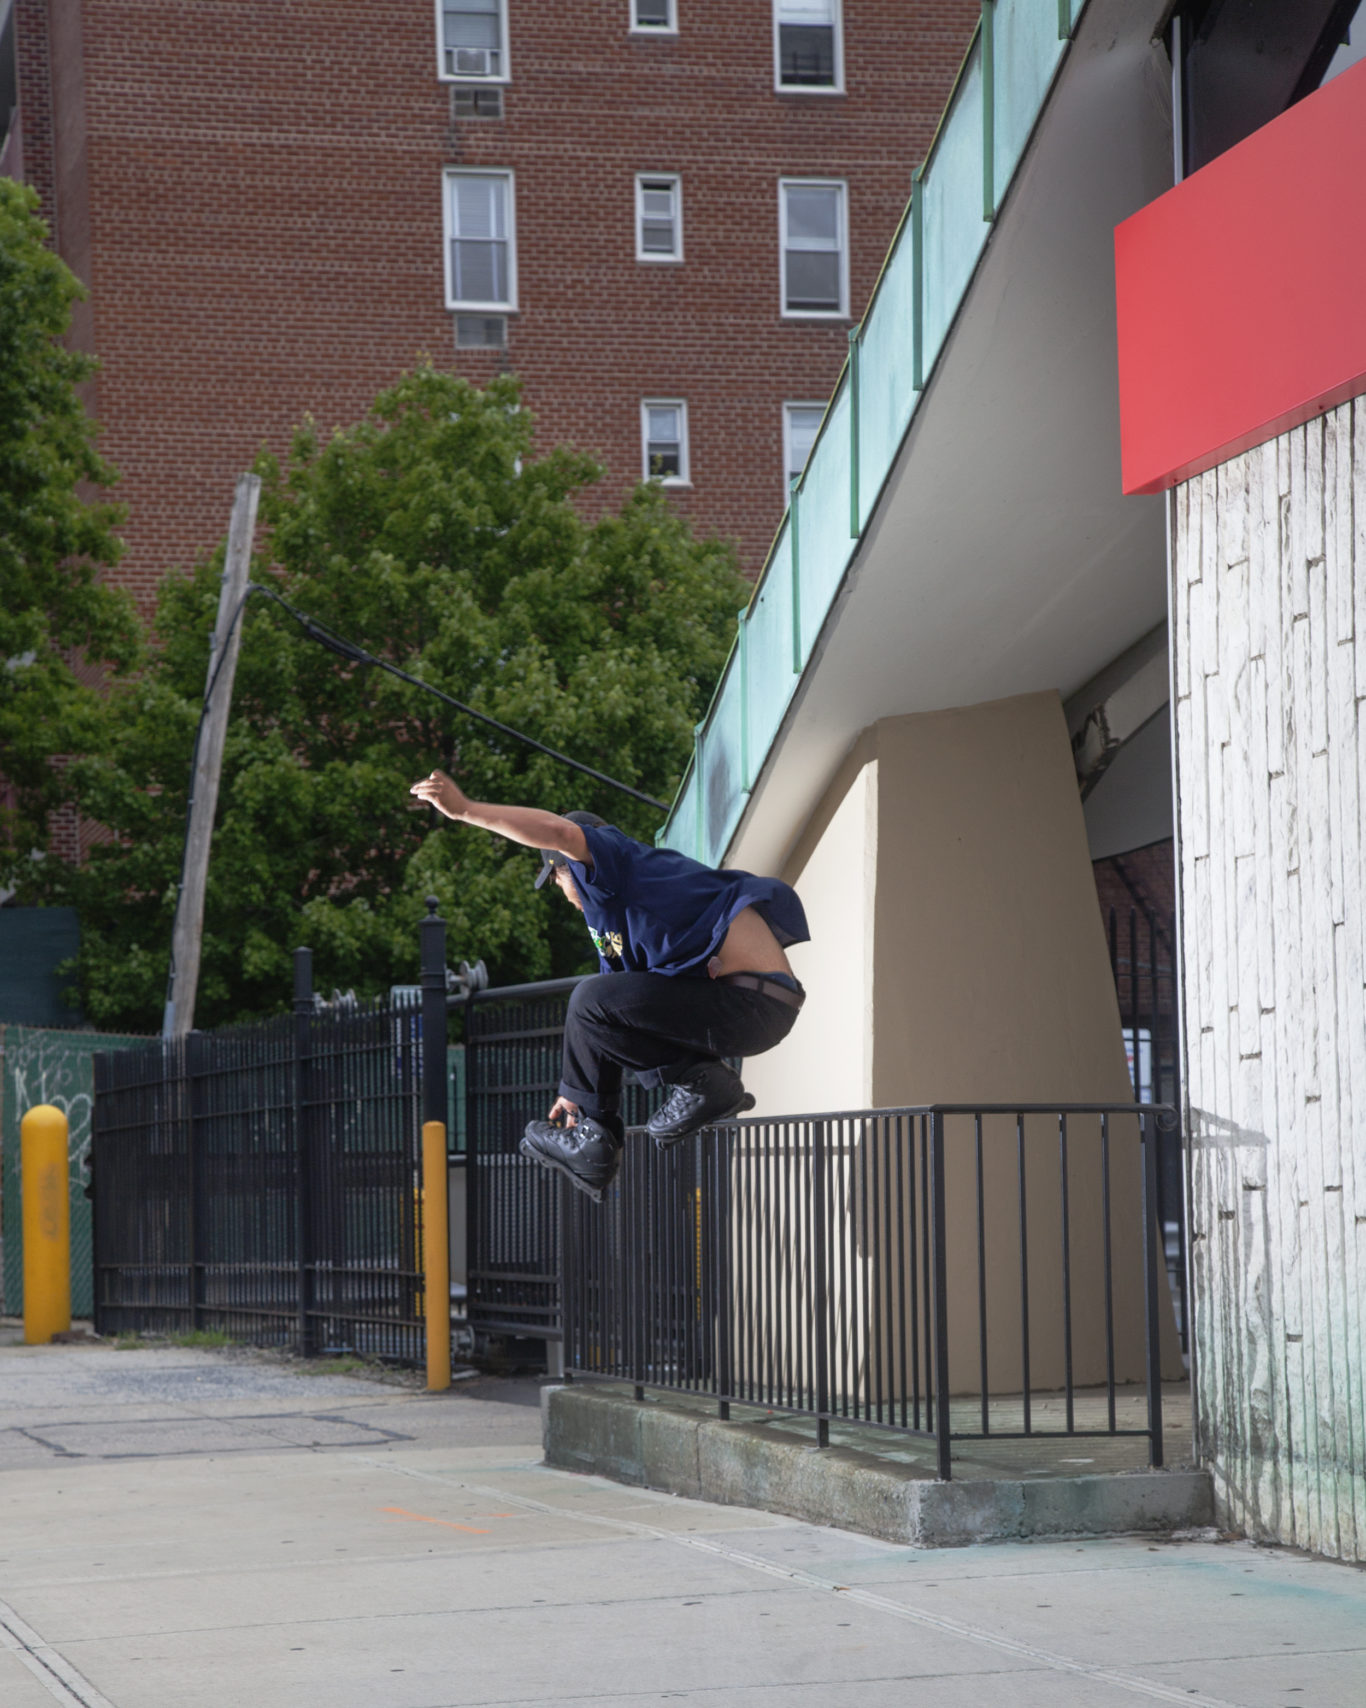 08_22_16_GREG_PRESTON_BACK_BACKSLIDE